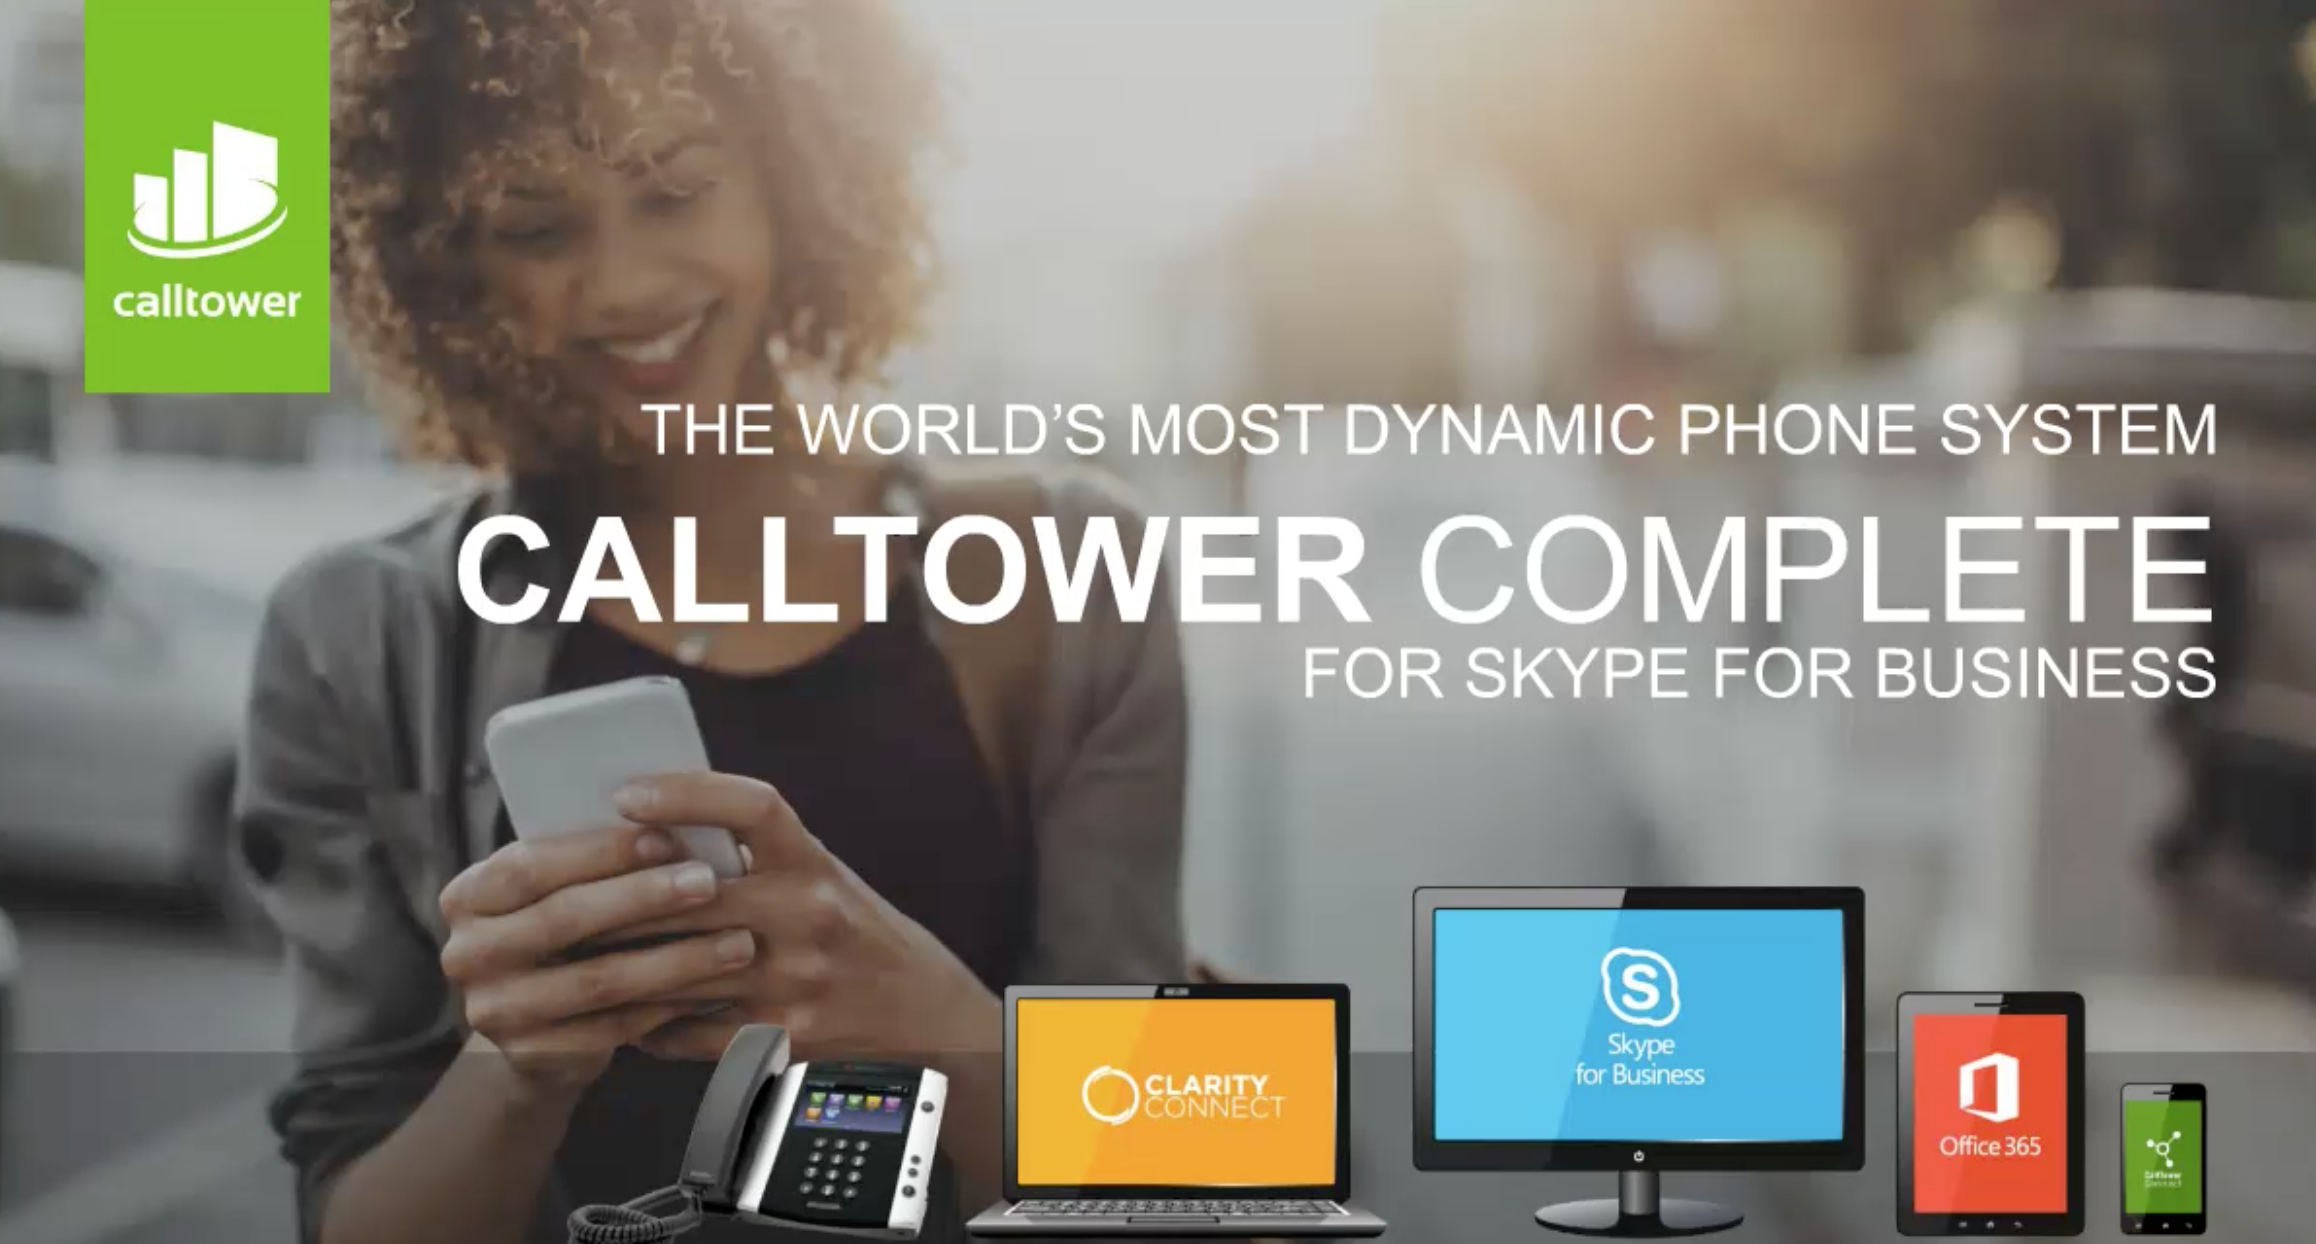 Webinar_CallTower_Complete_for_Skype_for_Business.png